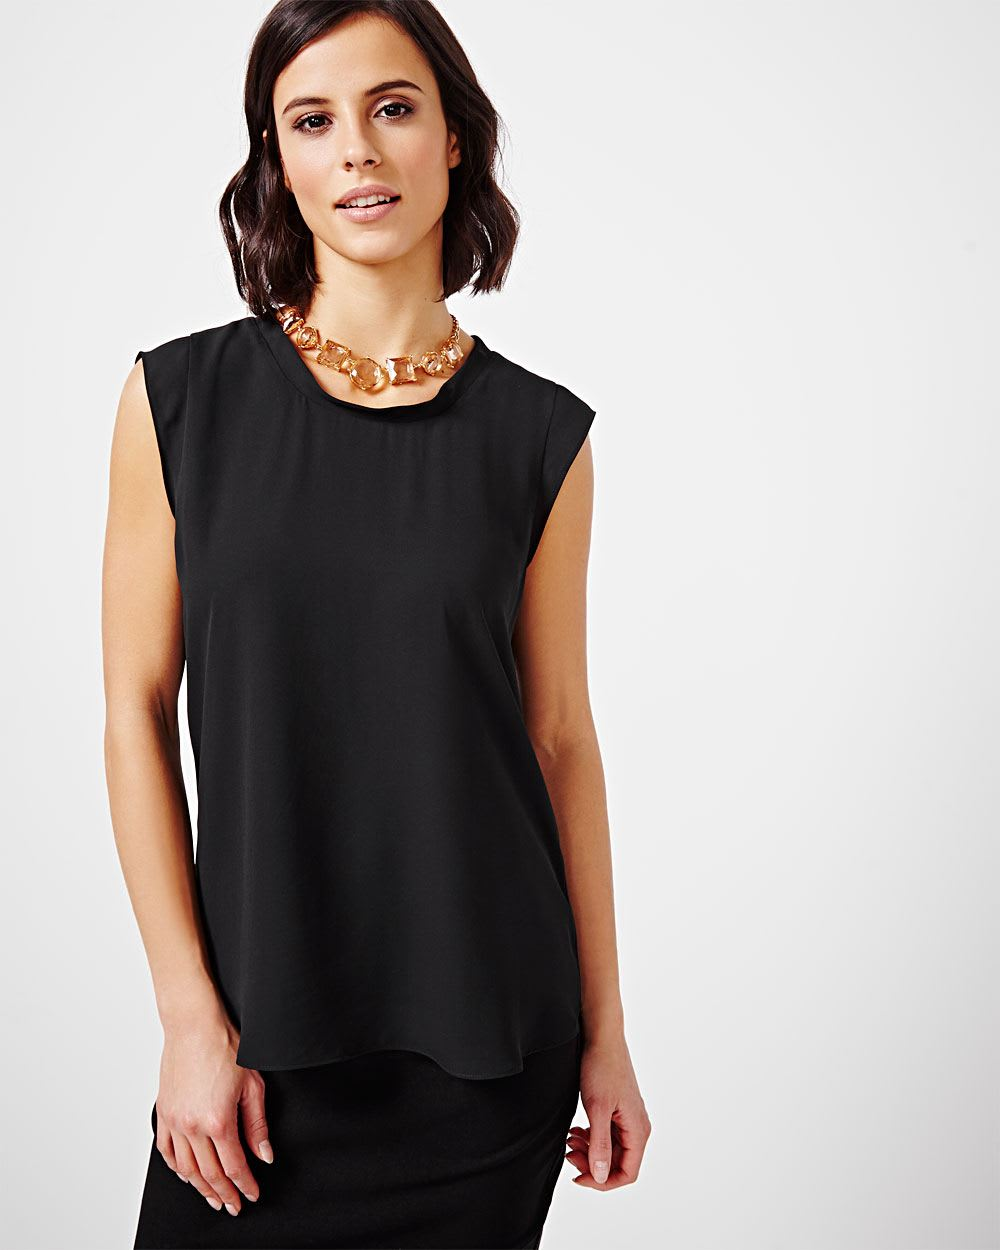 Find great deals on eBay for cap sleeve blouse. Shop with confidence.